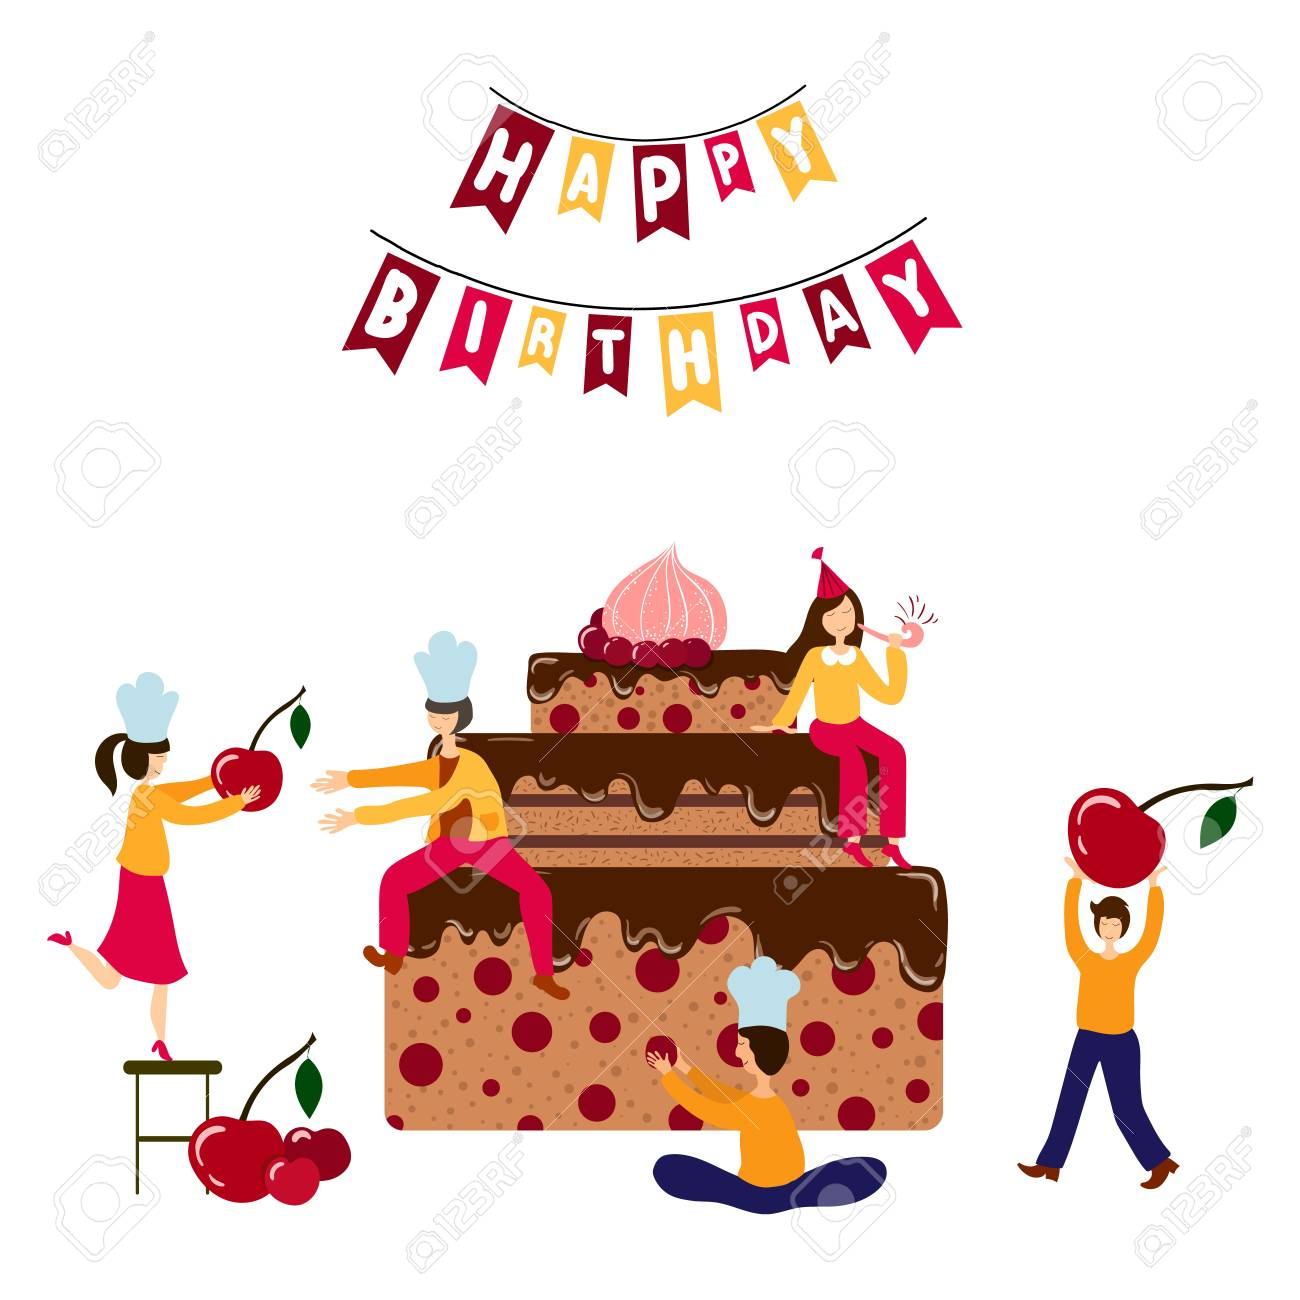 Phenomenal Teamwork Cooking Concept Little People Men And Women Funny Birthday Cards Online Fluifree Goldxyz